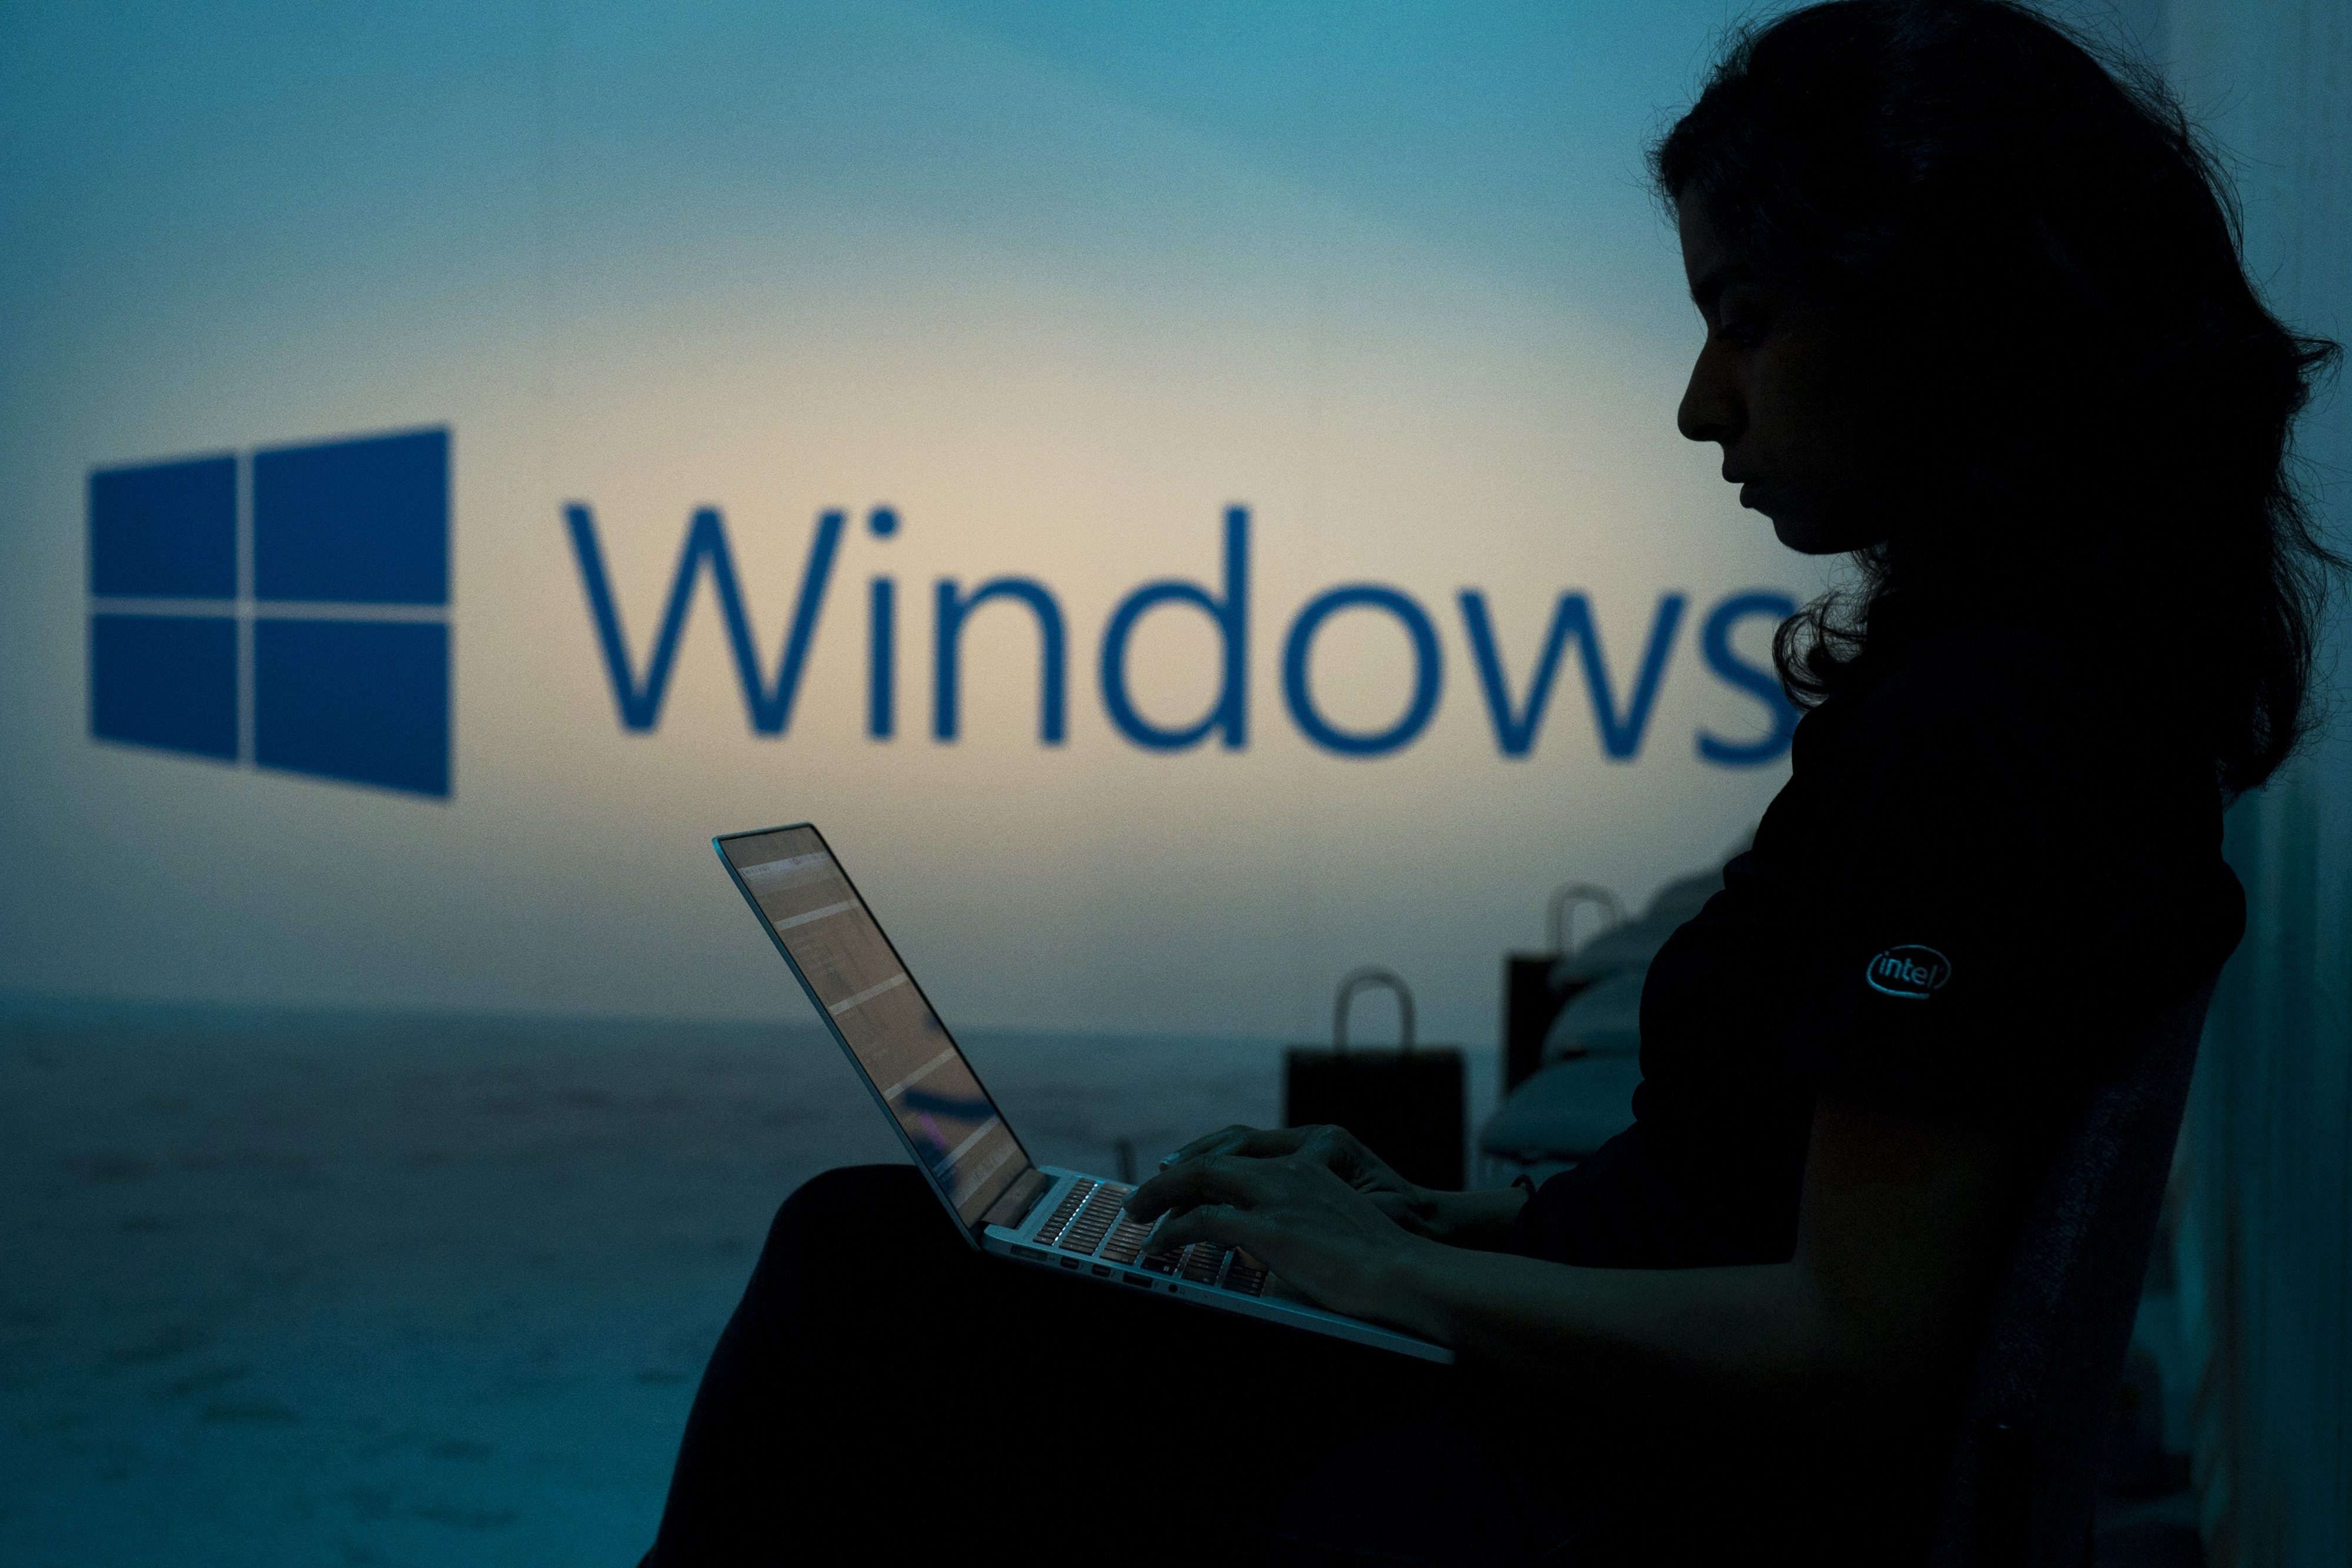 Microsoft's Windows 10 will use a new browser, code-named Project Spartan, to succeed Internet Explorer.